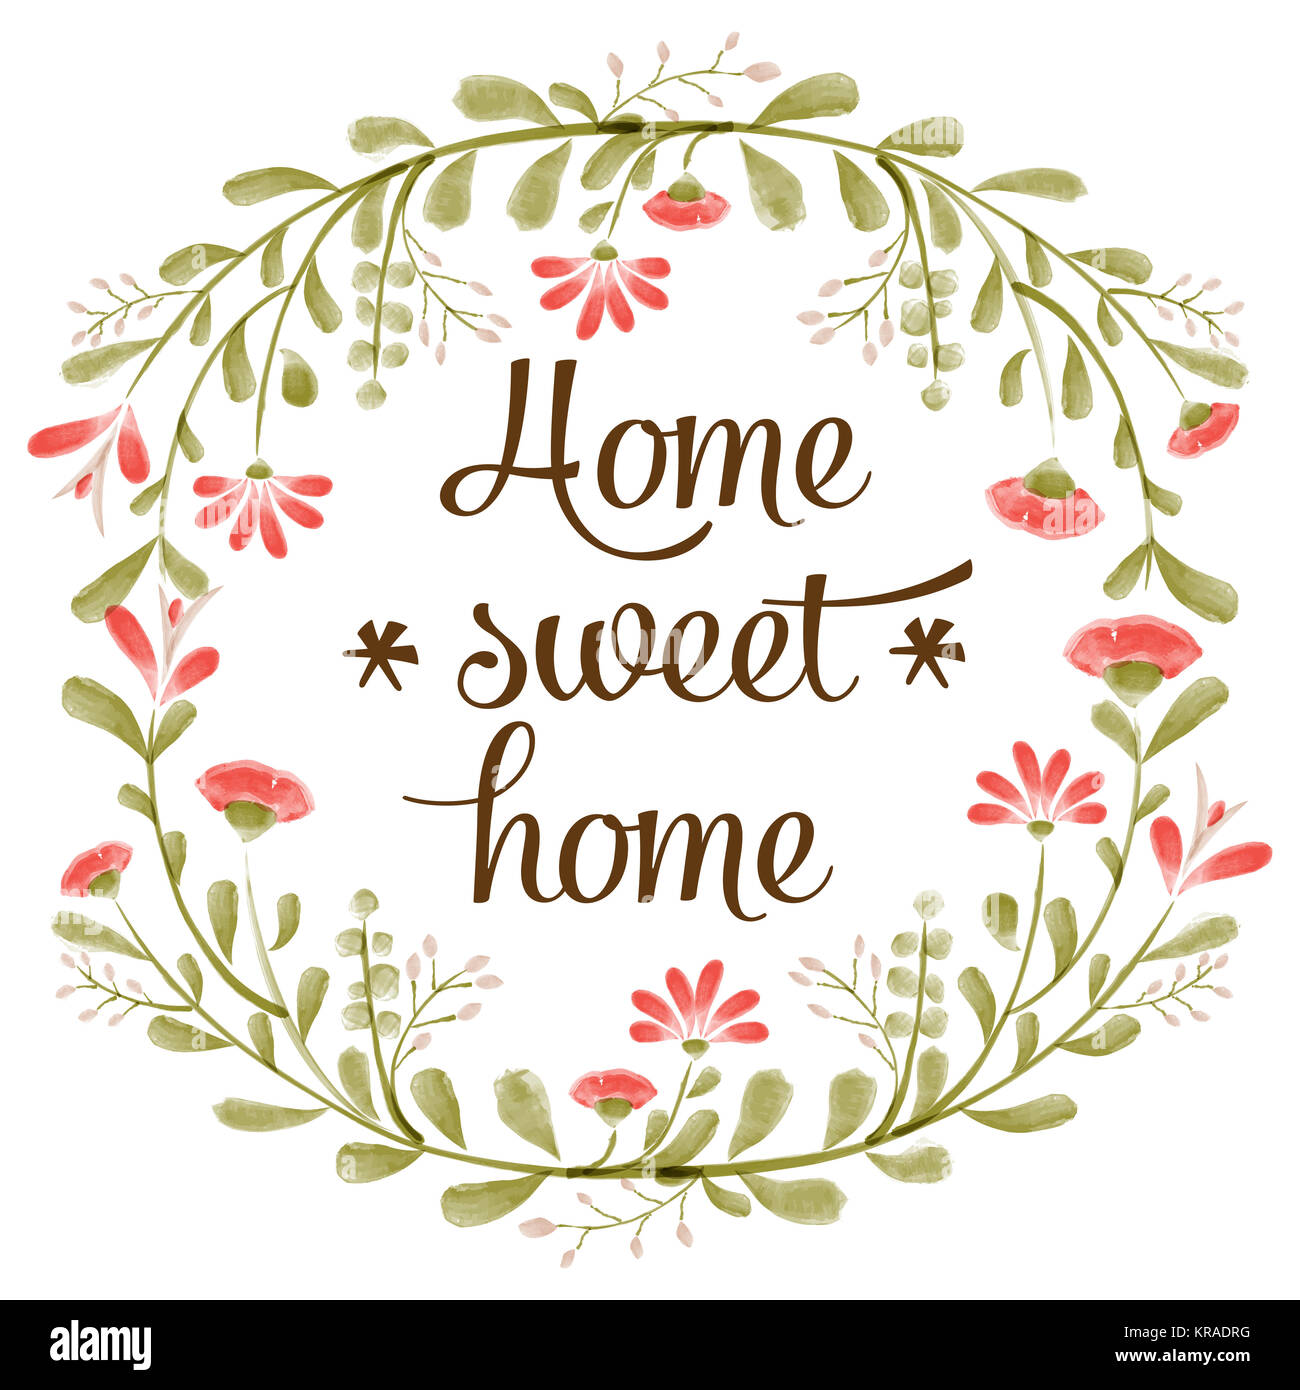 Home sweet home background with delicate watercolor flowers - Stock Image